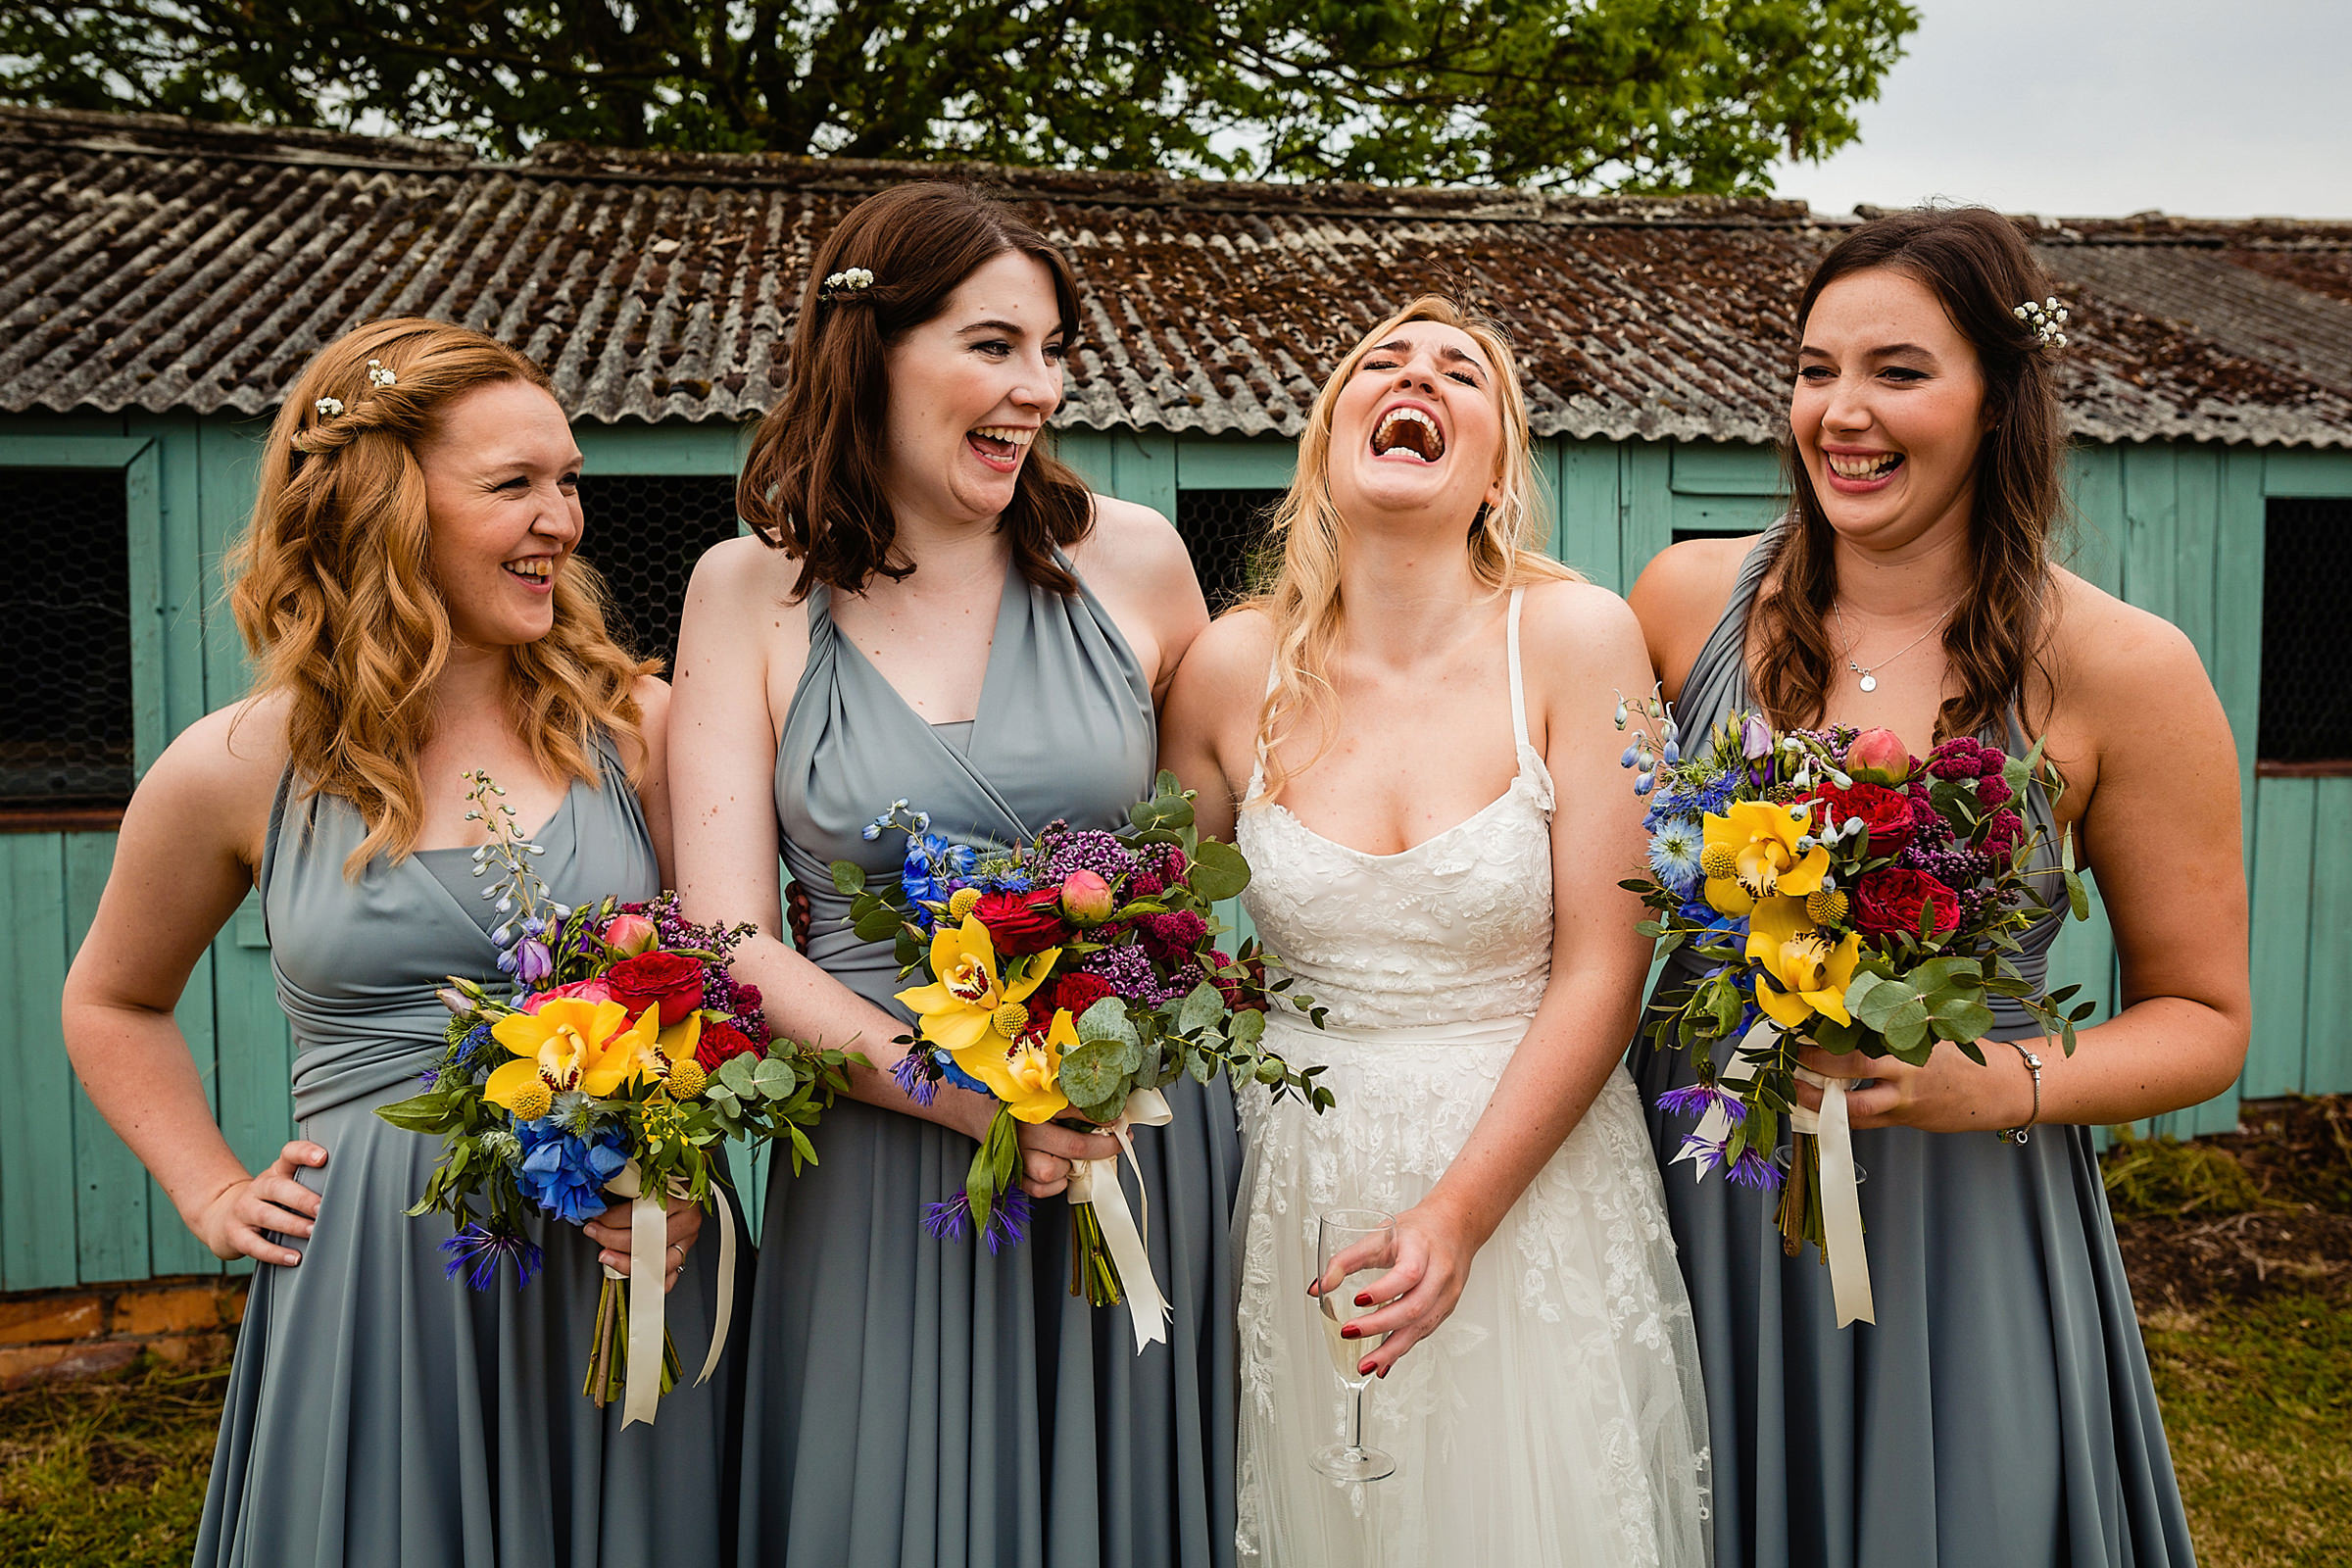 laughing-bride-and-bridesmaids-in-sage-wrap-dresses-emmaplusrich